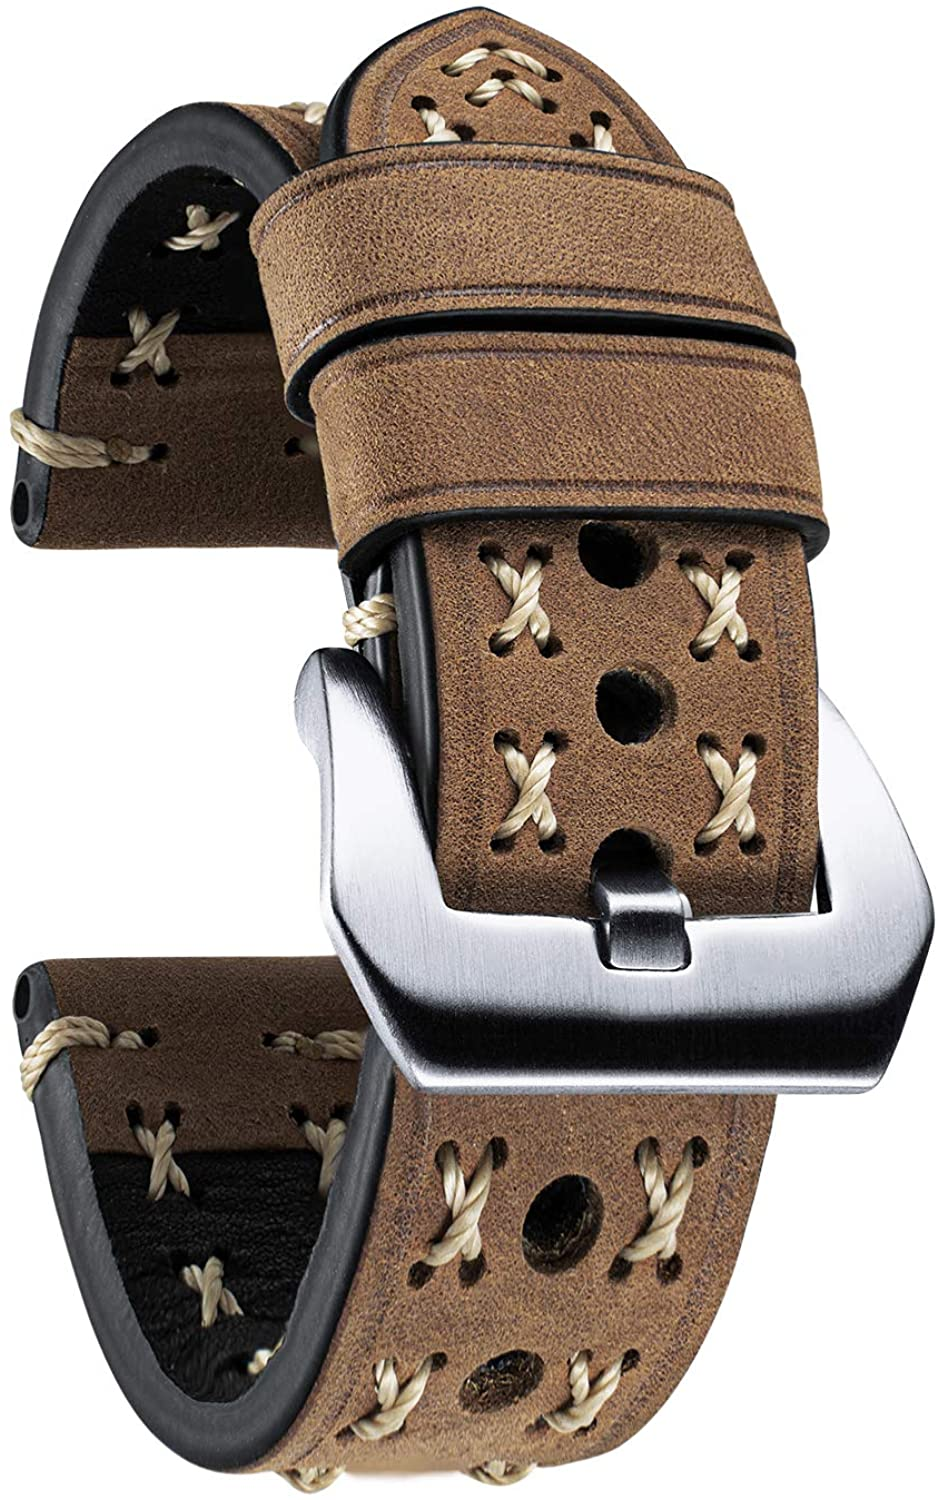 BINLUN Replacement Watch Strap Handmade Thick Flexible Oil Top Grain Leather Strap in 4 Sizes(20/22/24/26mm) and 6 Colors with 2-Colors Stainless Pin Buckle and X Type Thick Line